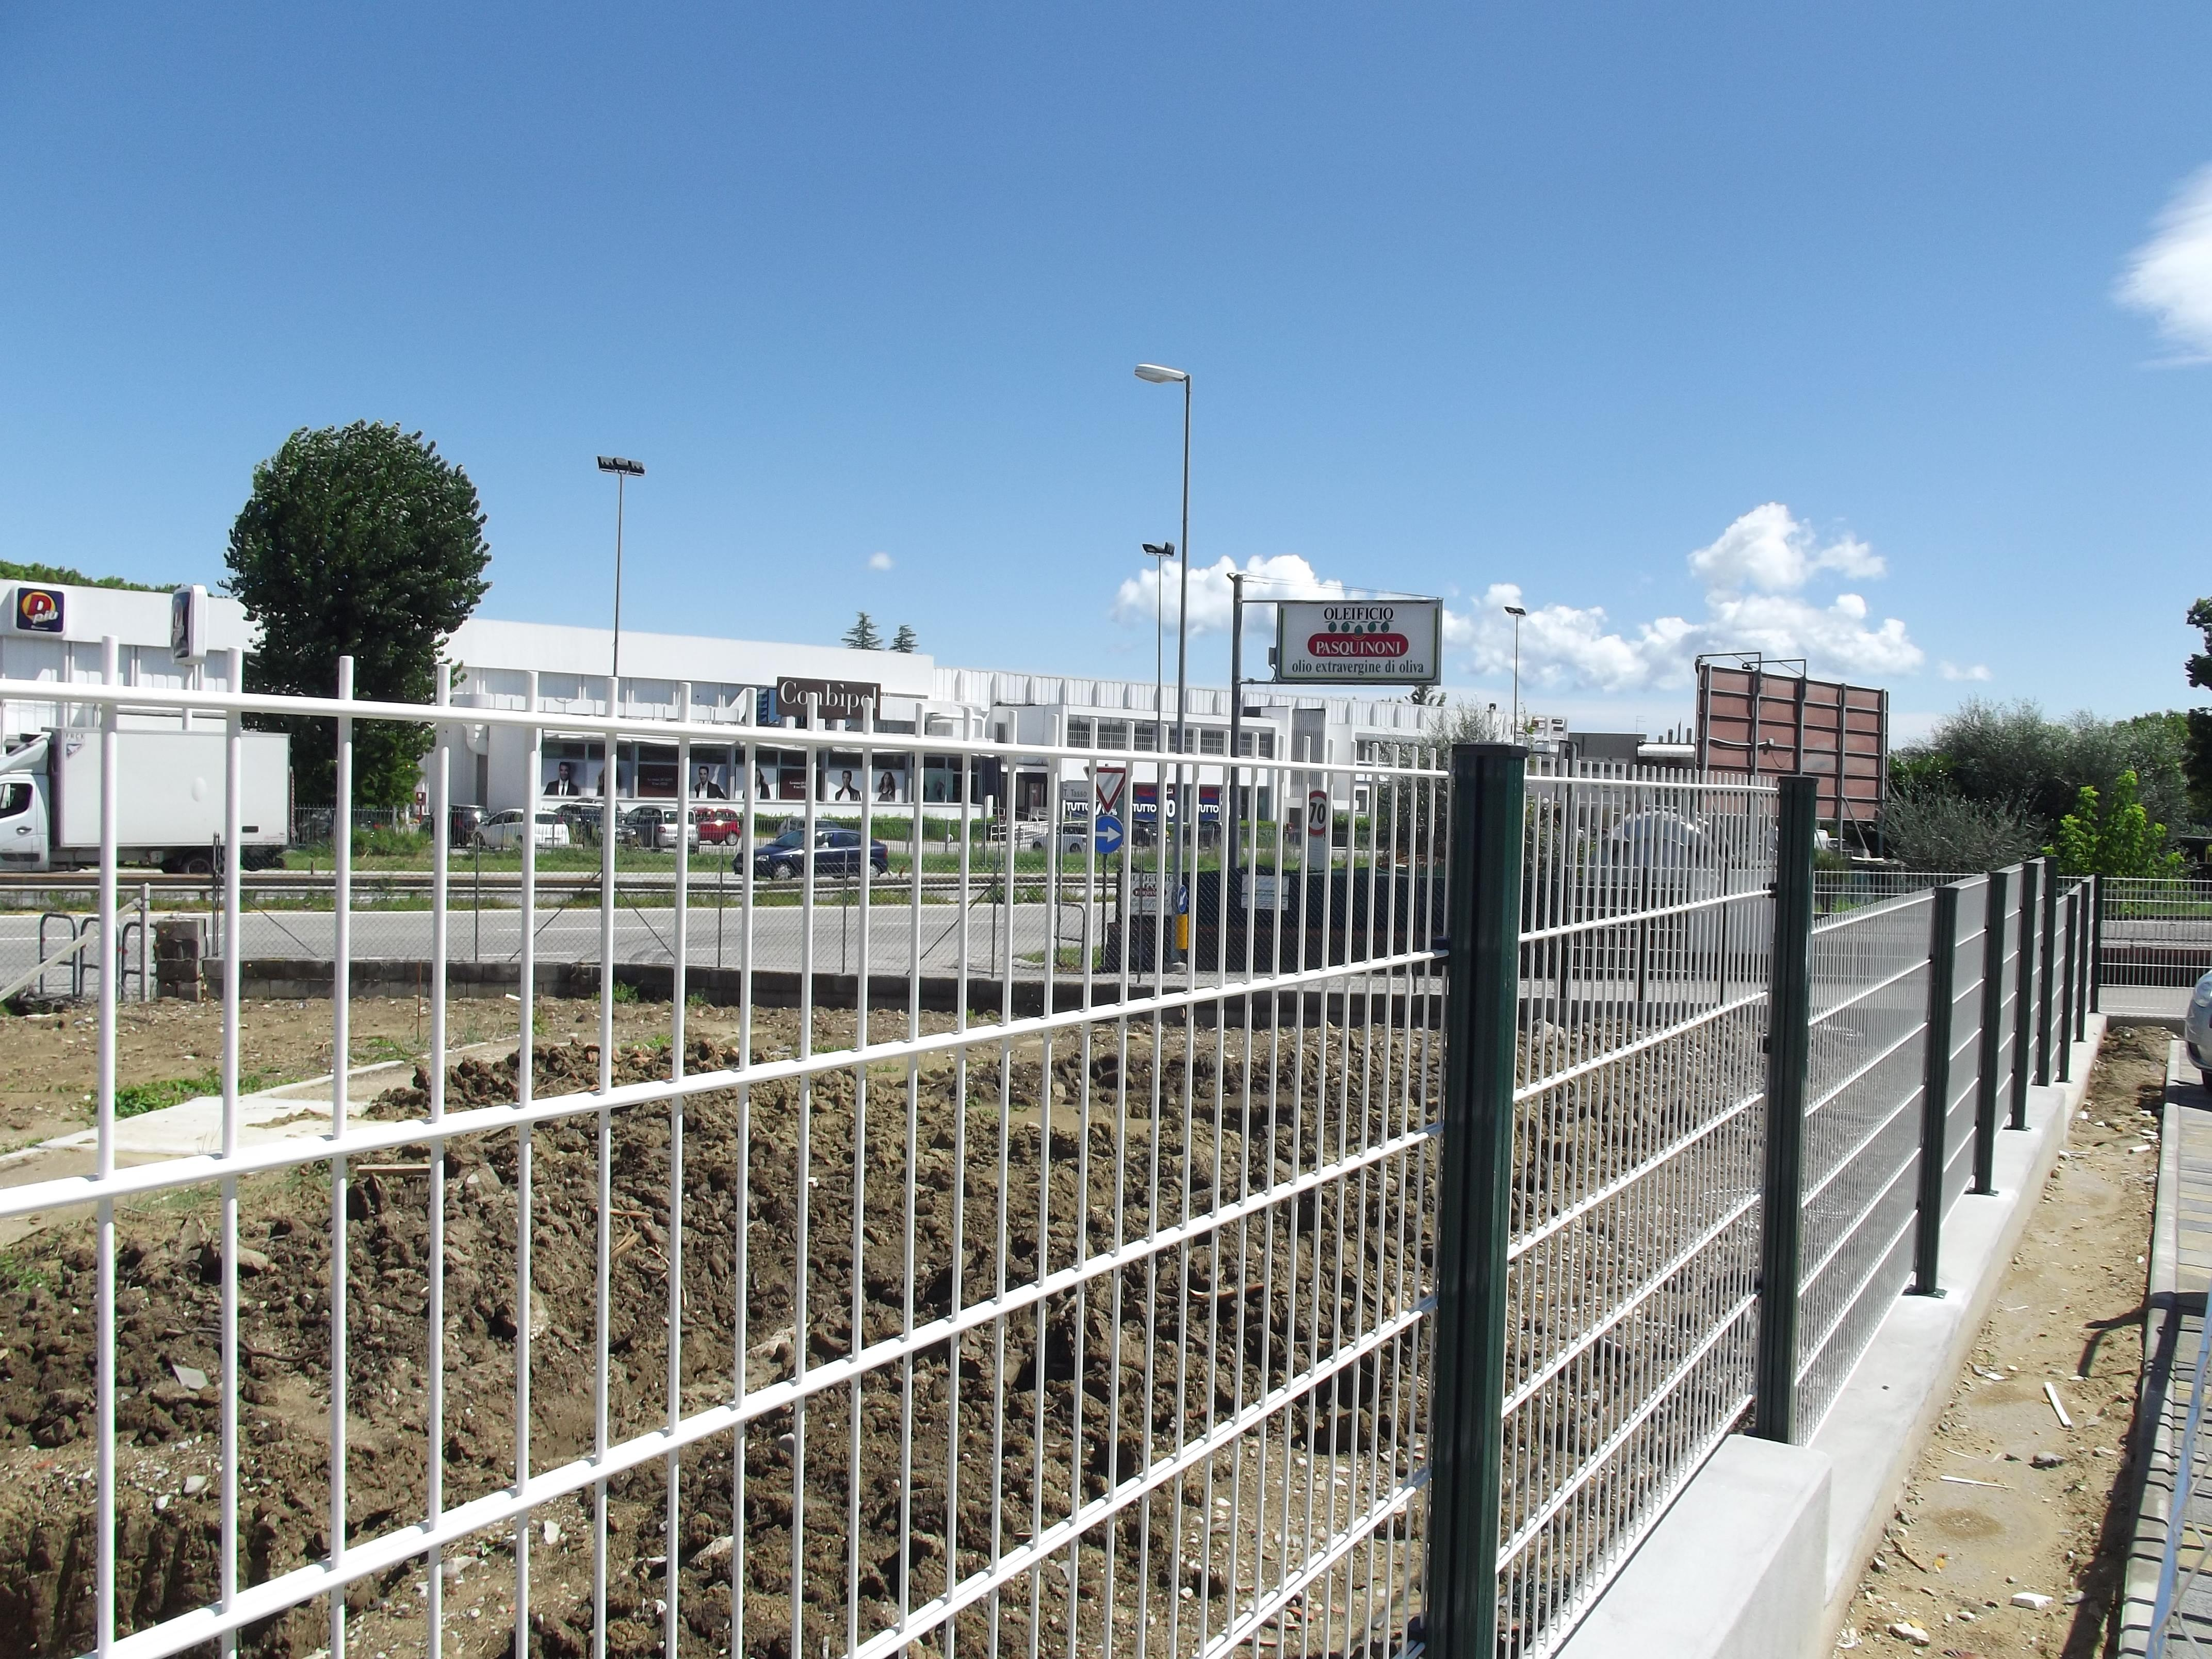 Fencing Welded Mesh paired wire - Avantgates